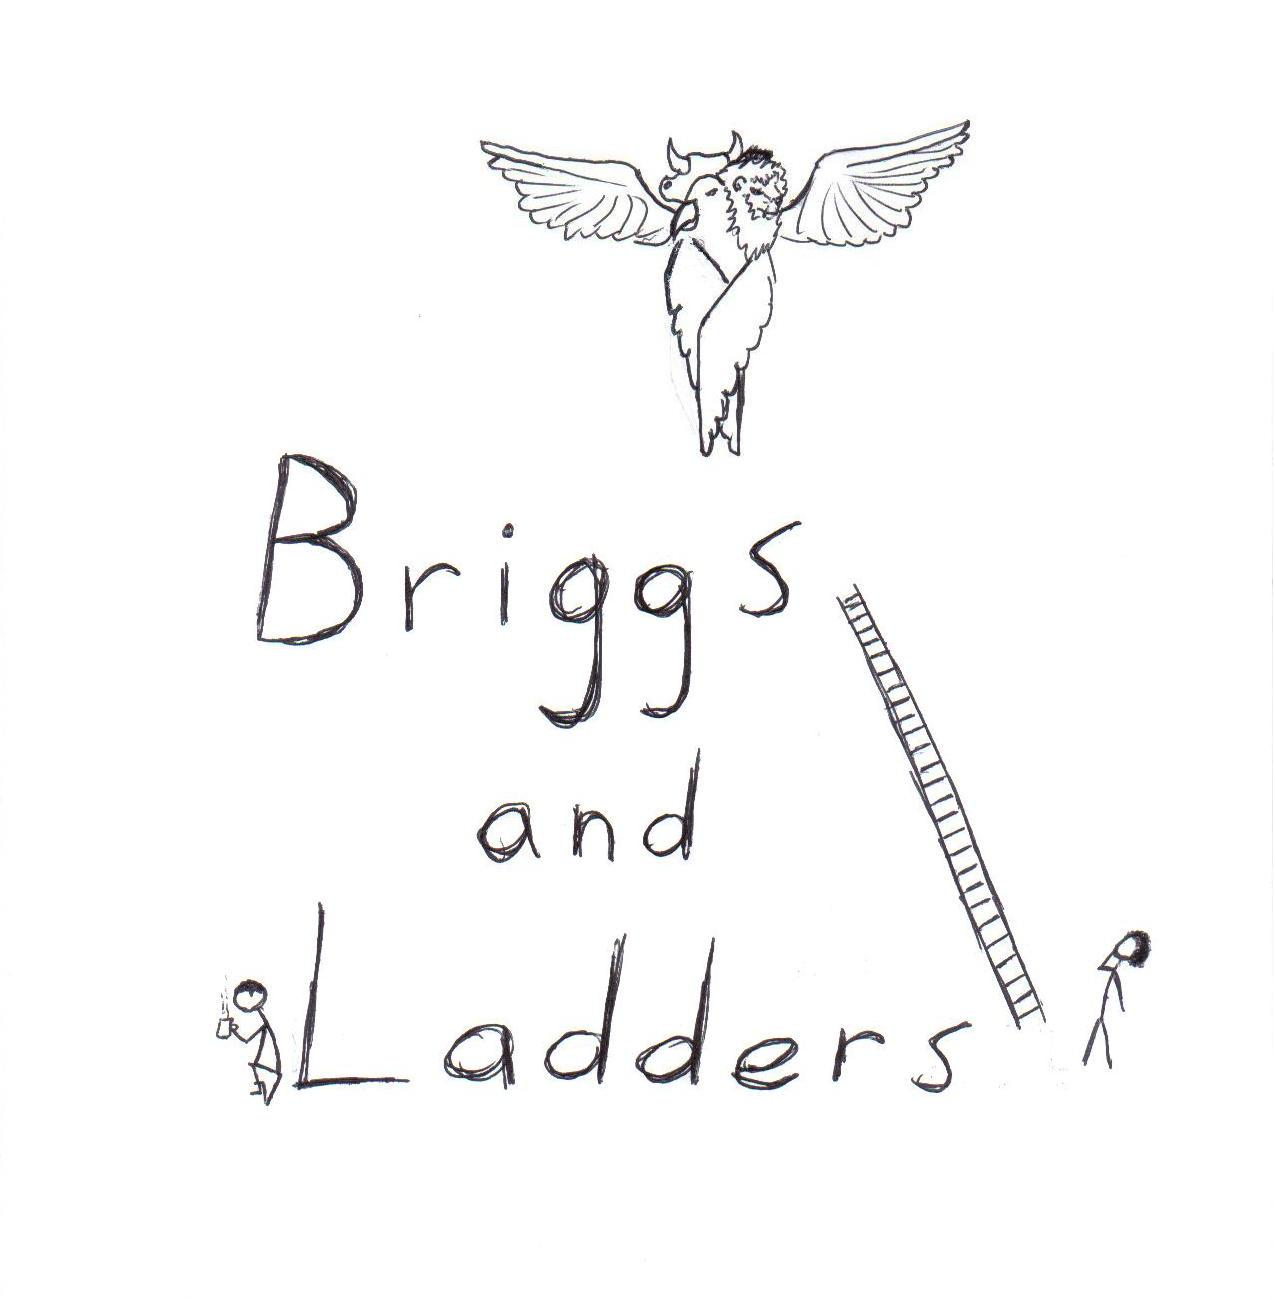 The Chirp Briggs And Ladders